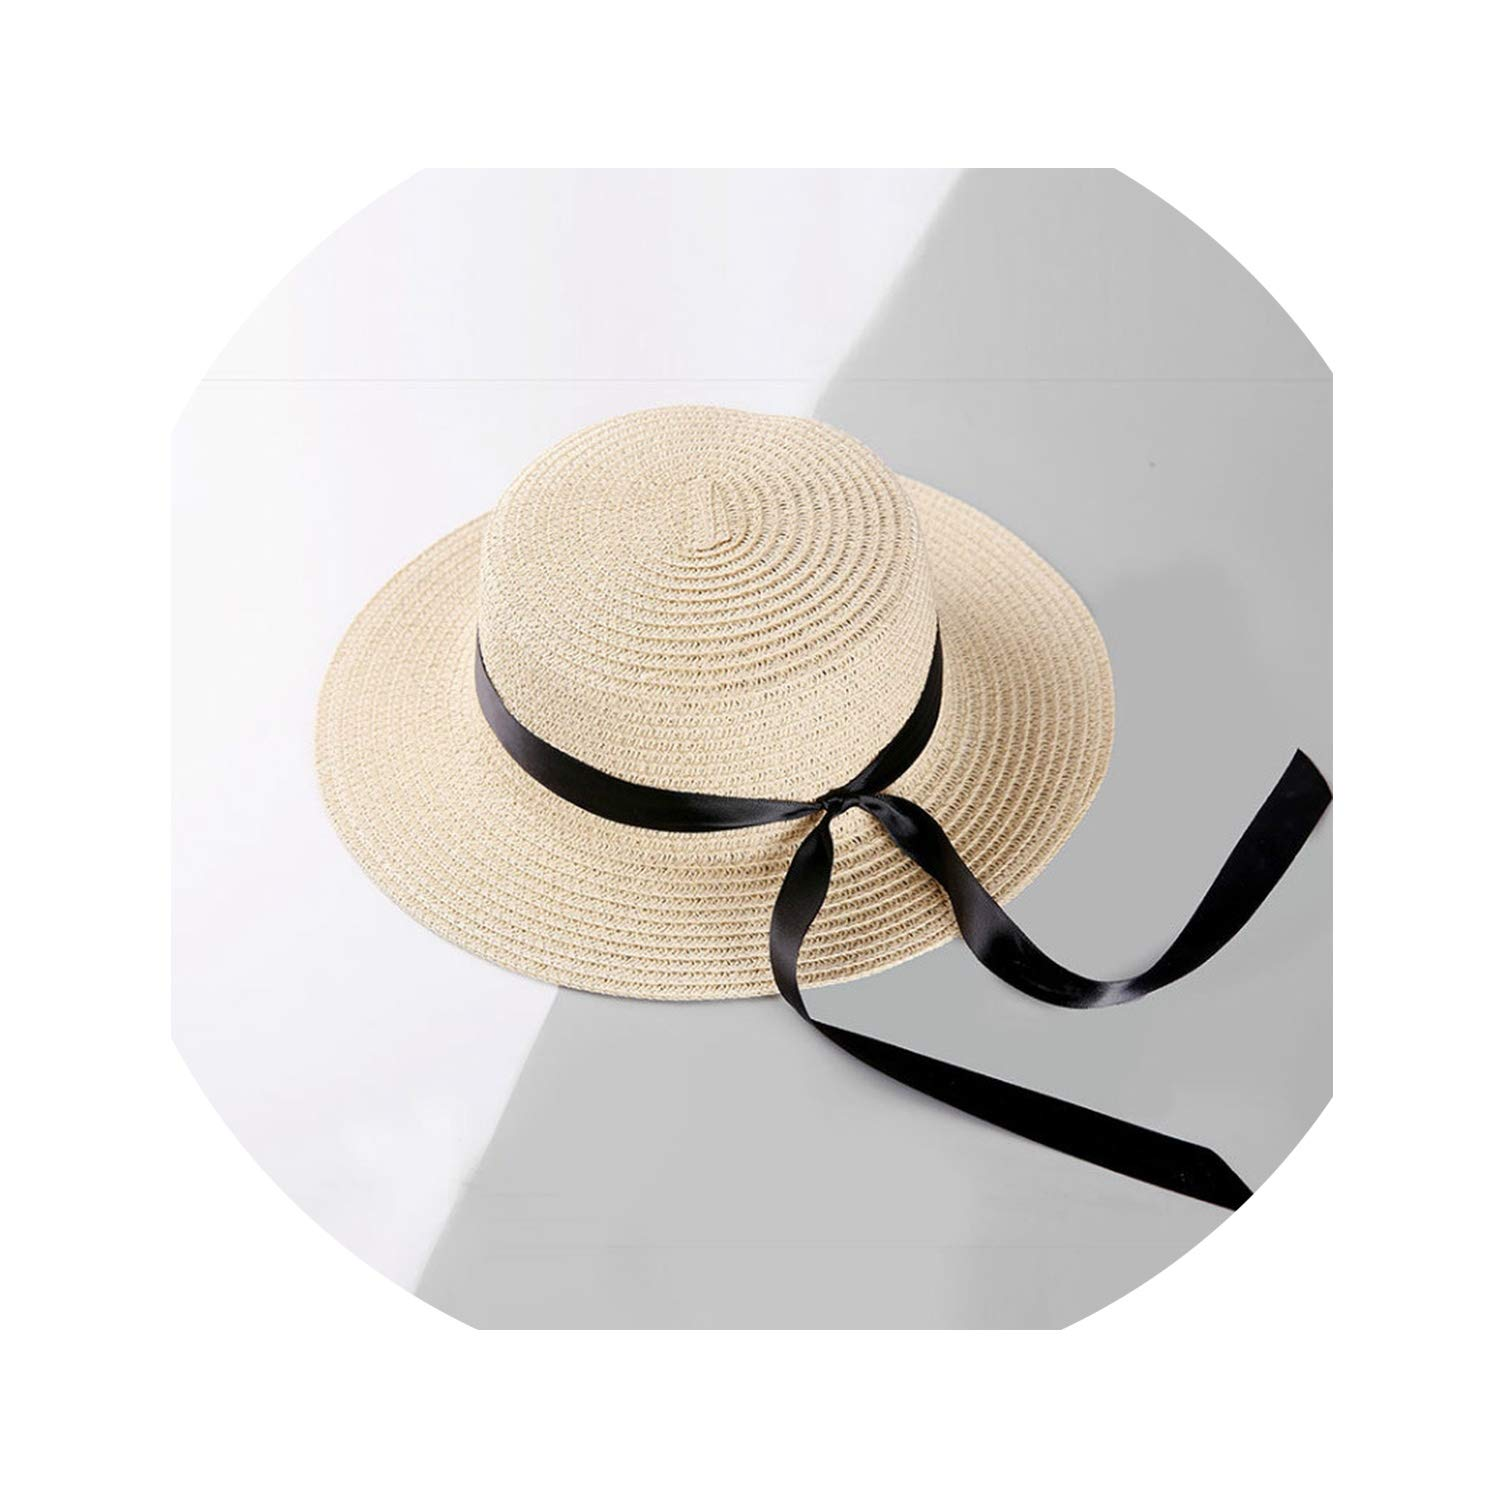 new product hot sale elegant shoes Summer Sun Hats for Women Beach Boater hat Ladies Panama ...